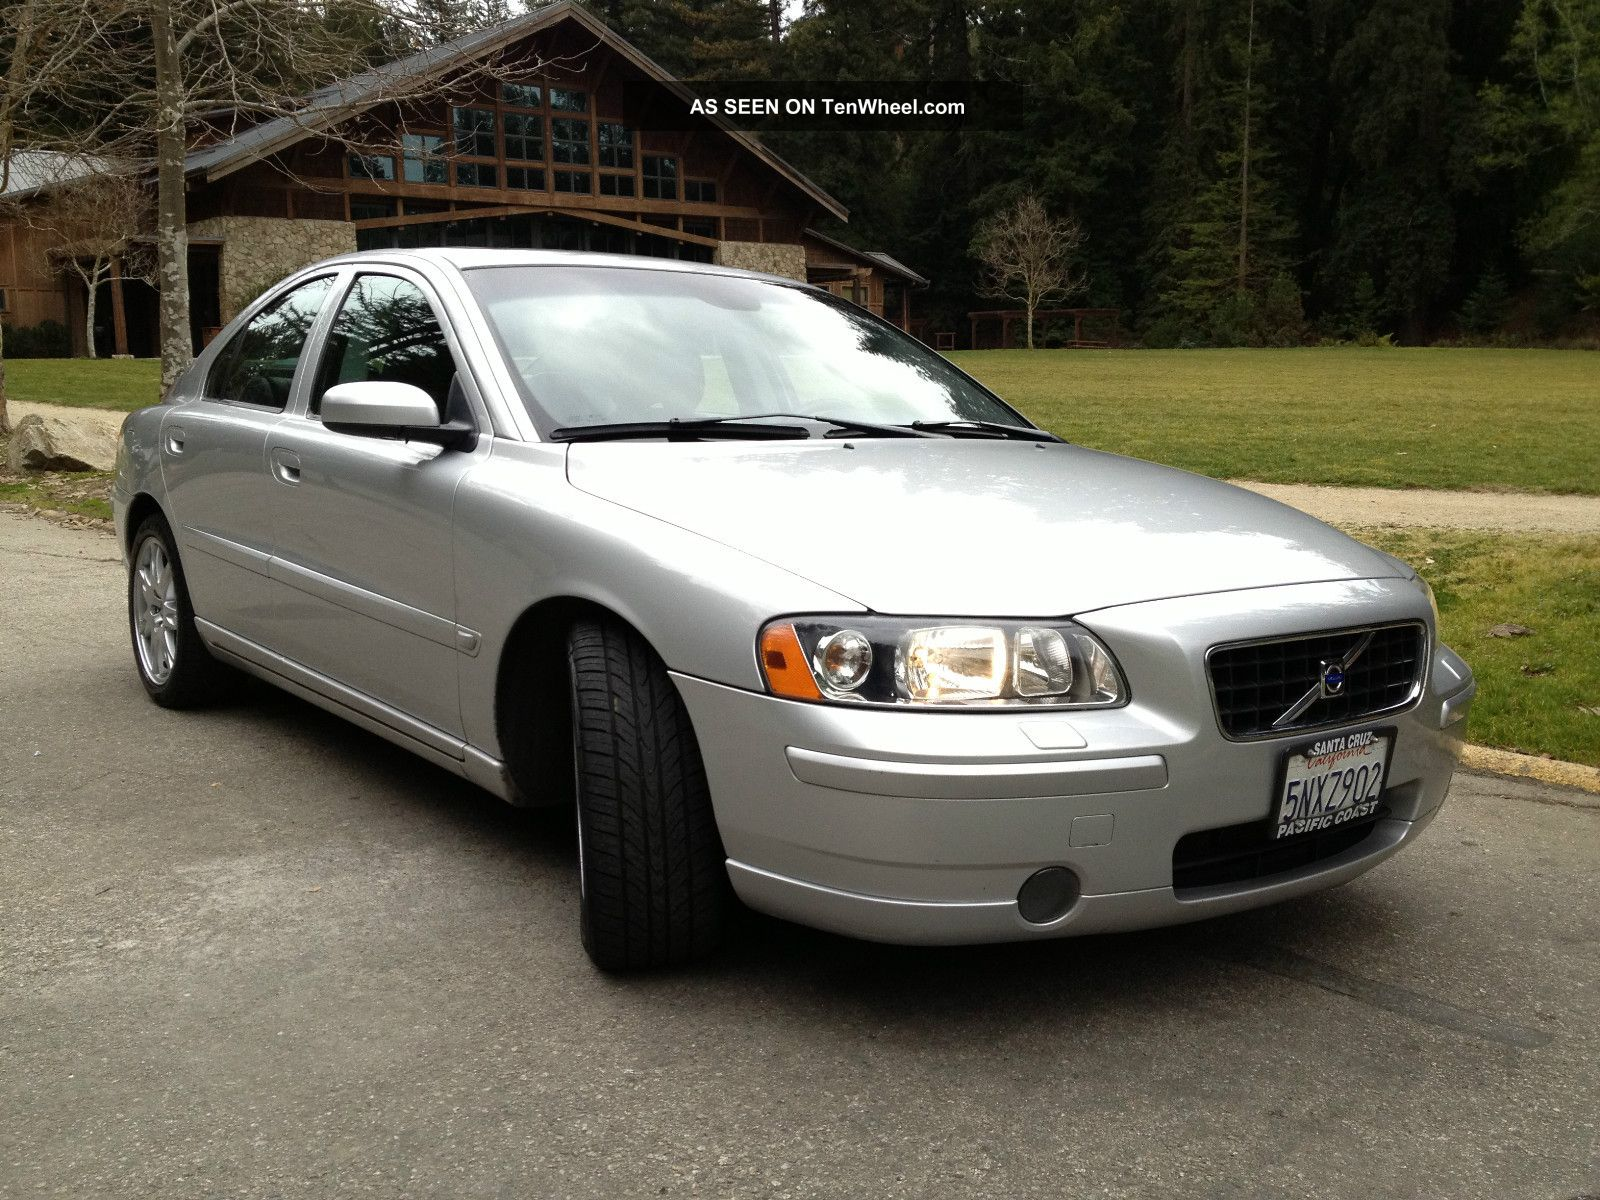 2005 volvo s60 2 5t turbo volvo mechanic inspected march 15 2013